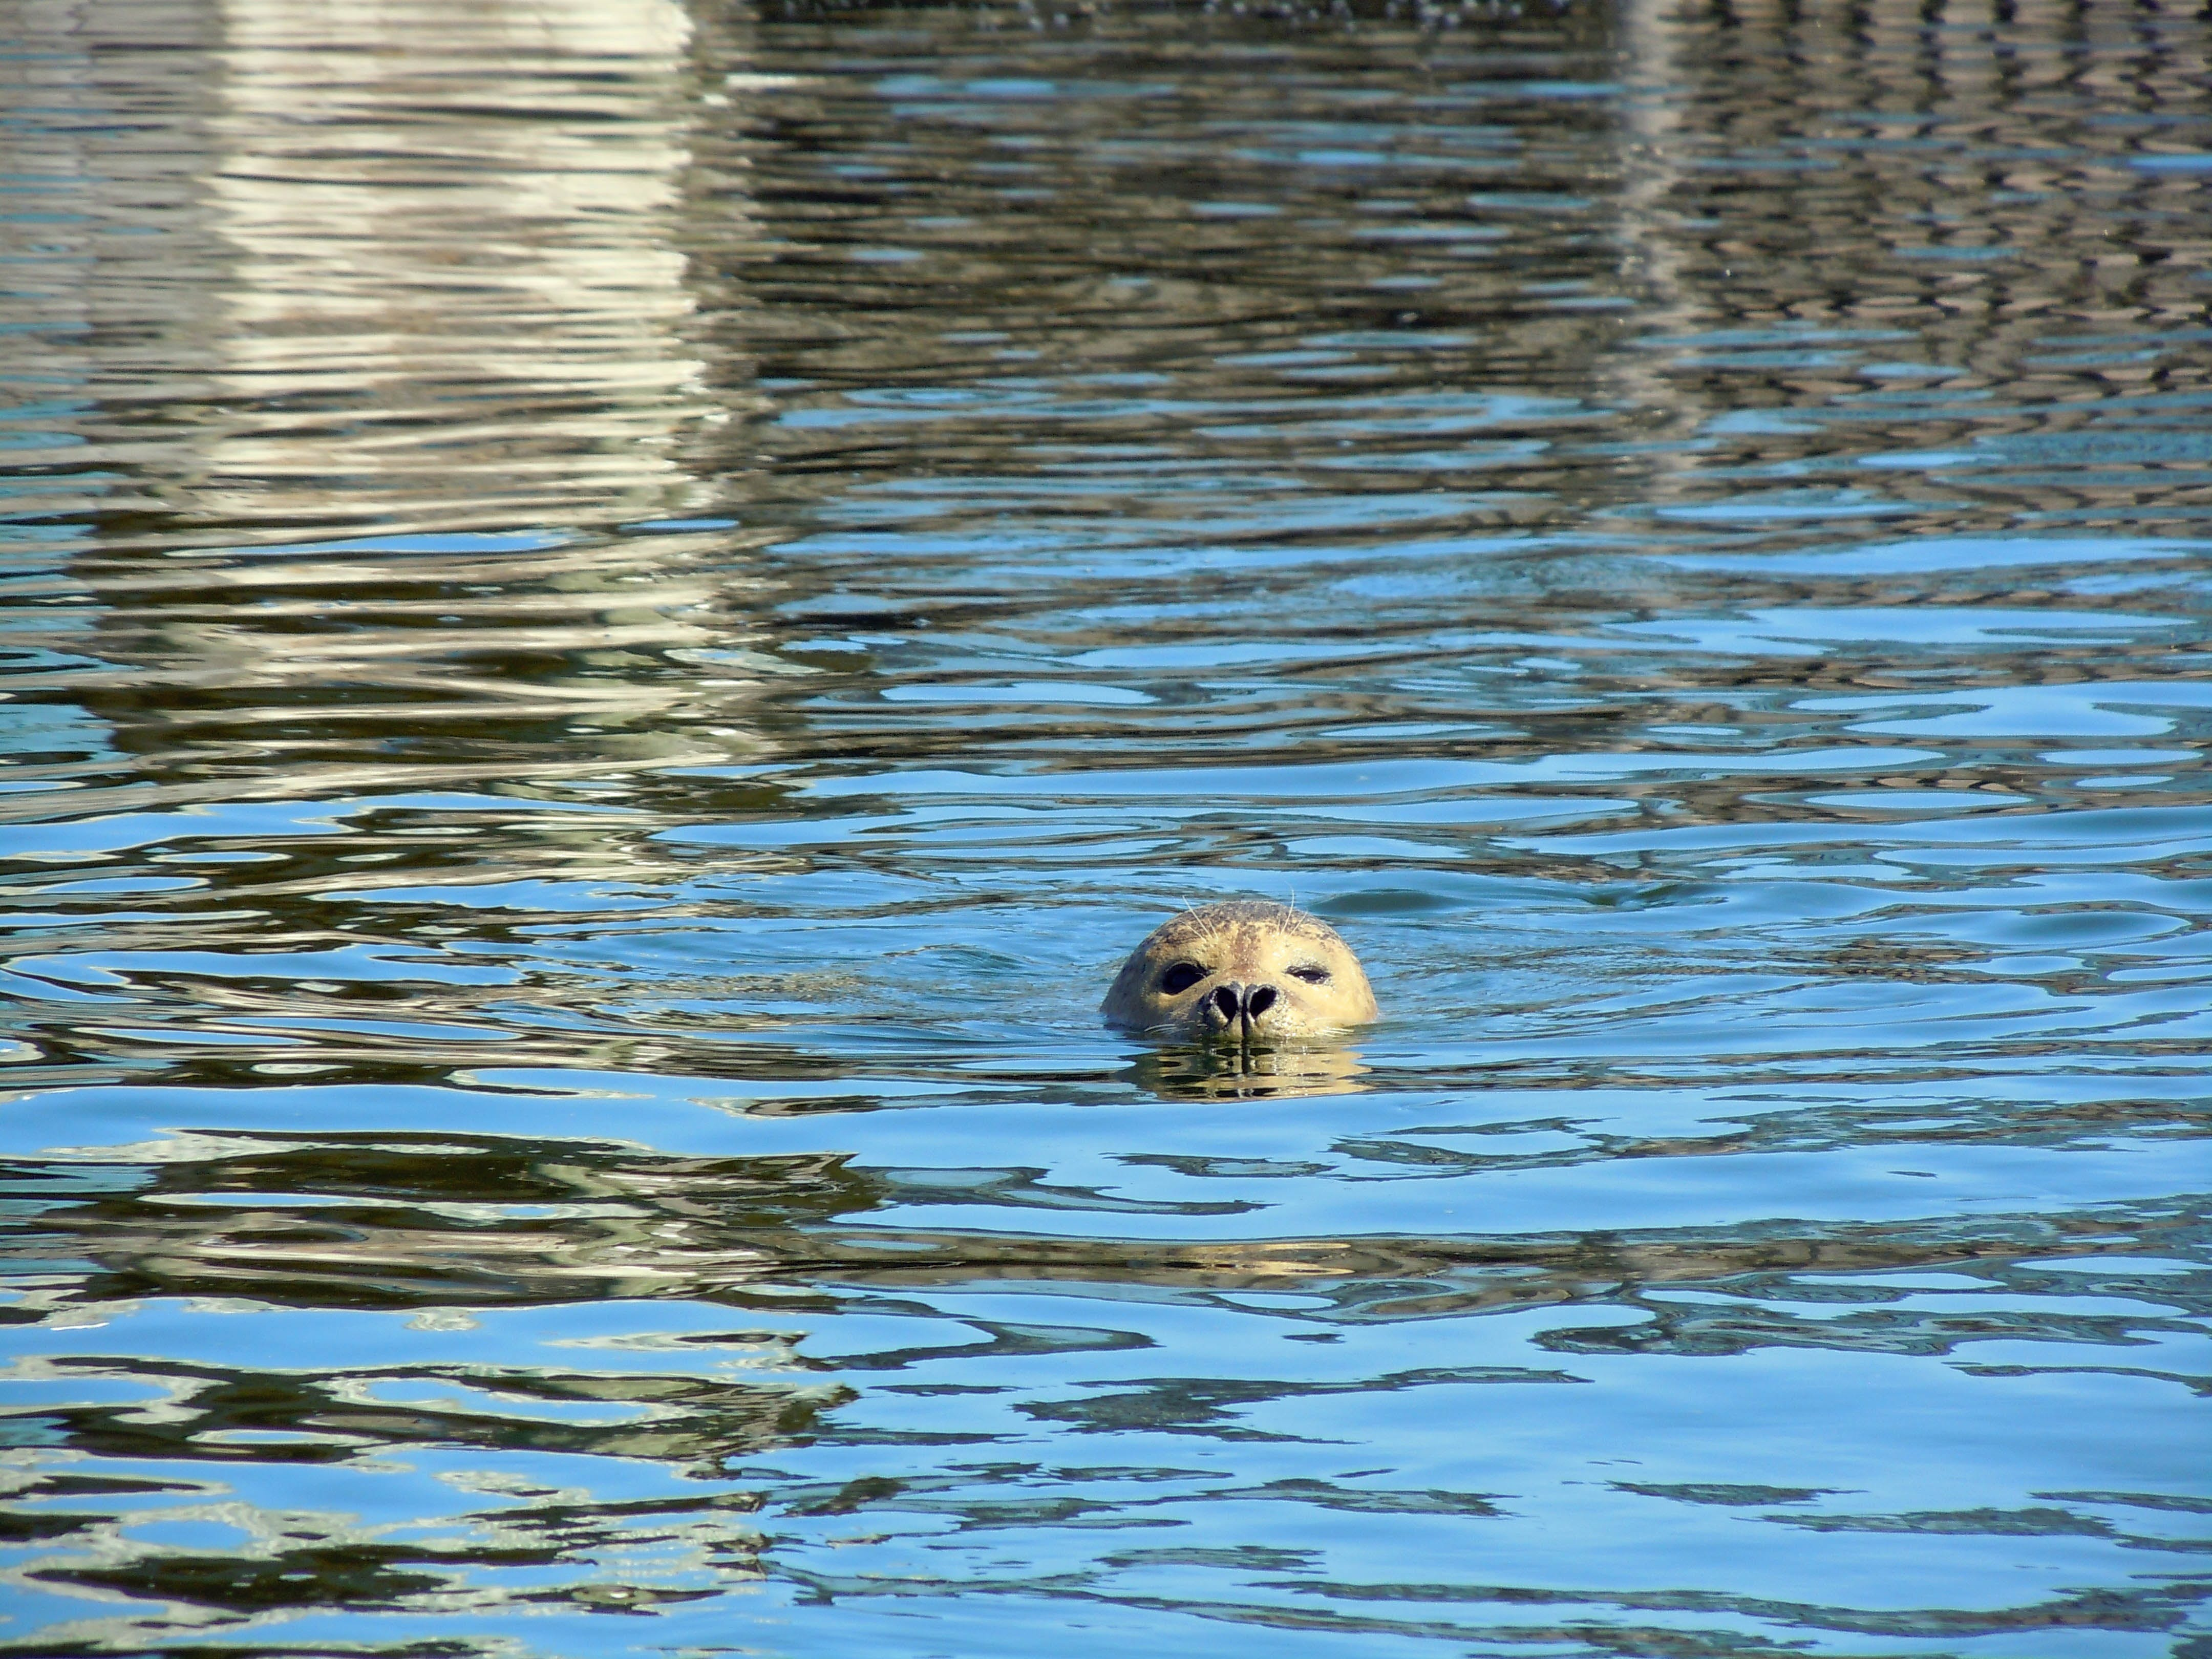 Gold Retriever Swimming in Water during Daytime